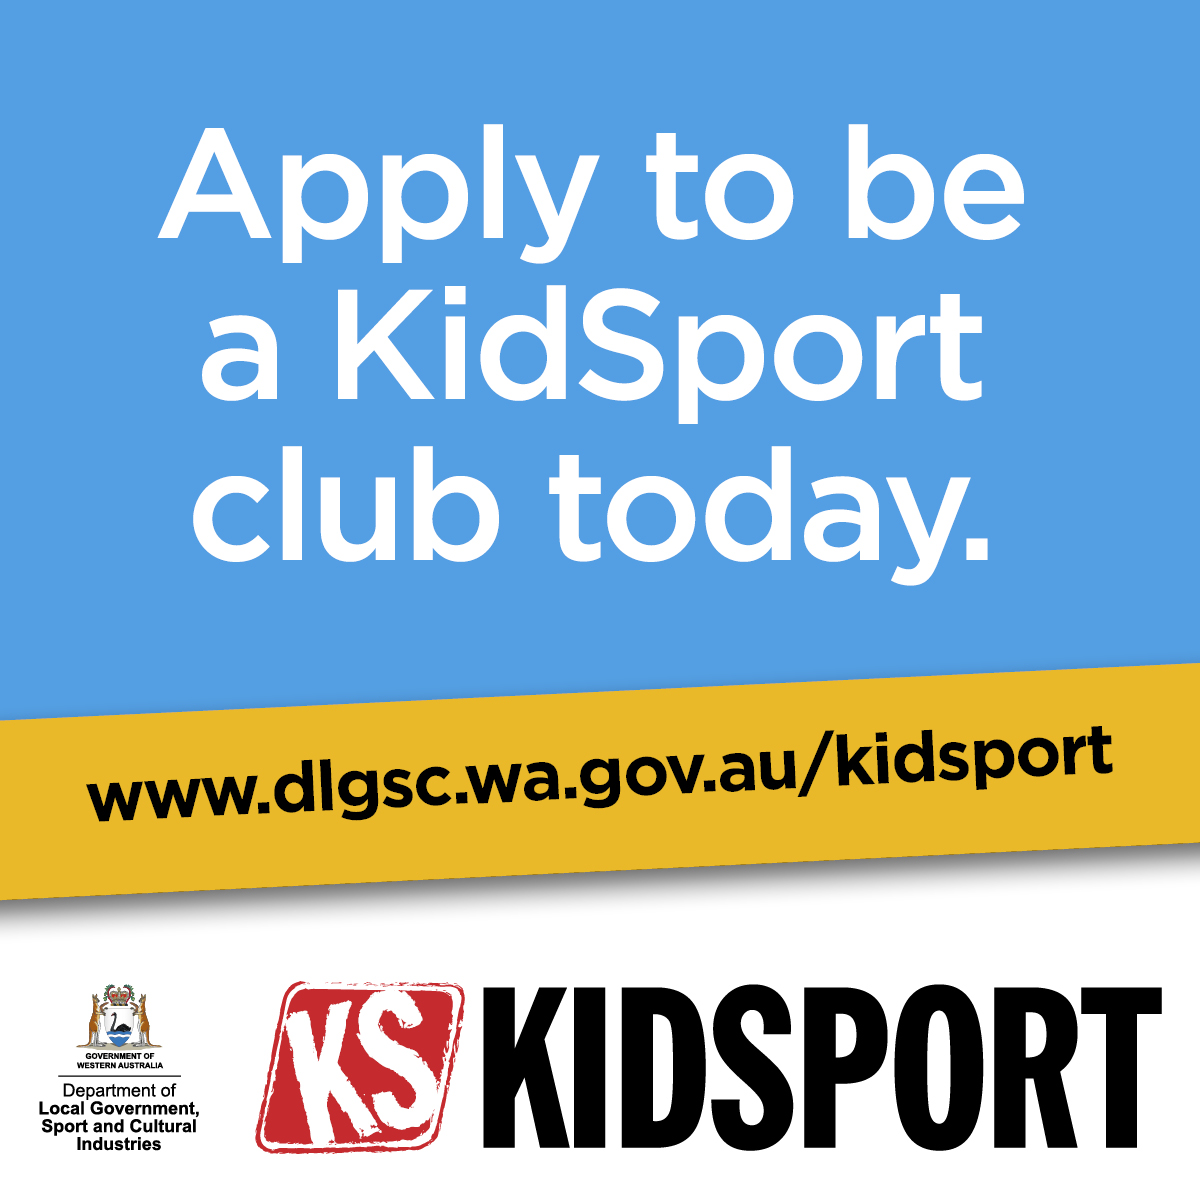 KidSport website image Apply to be a KidSport club today words only